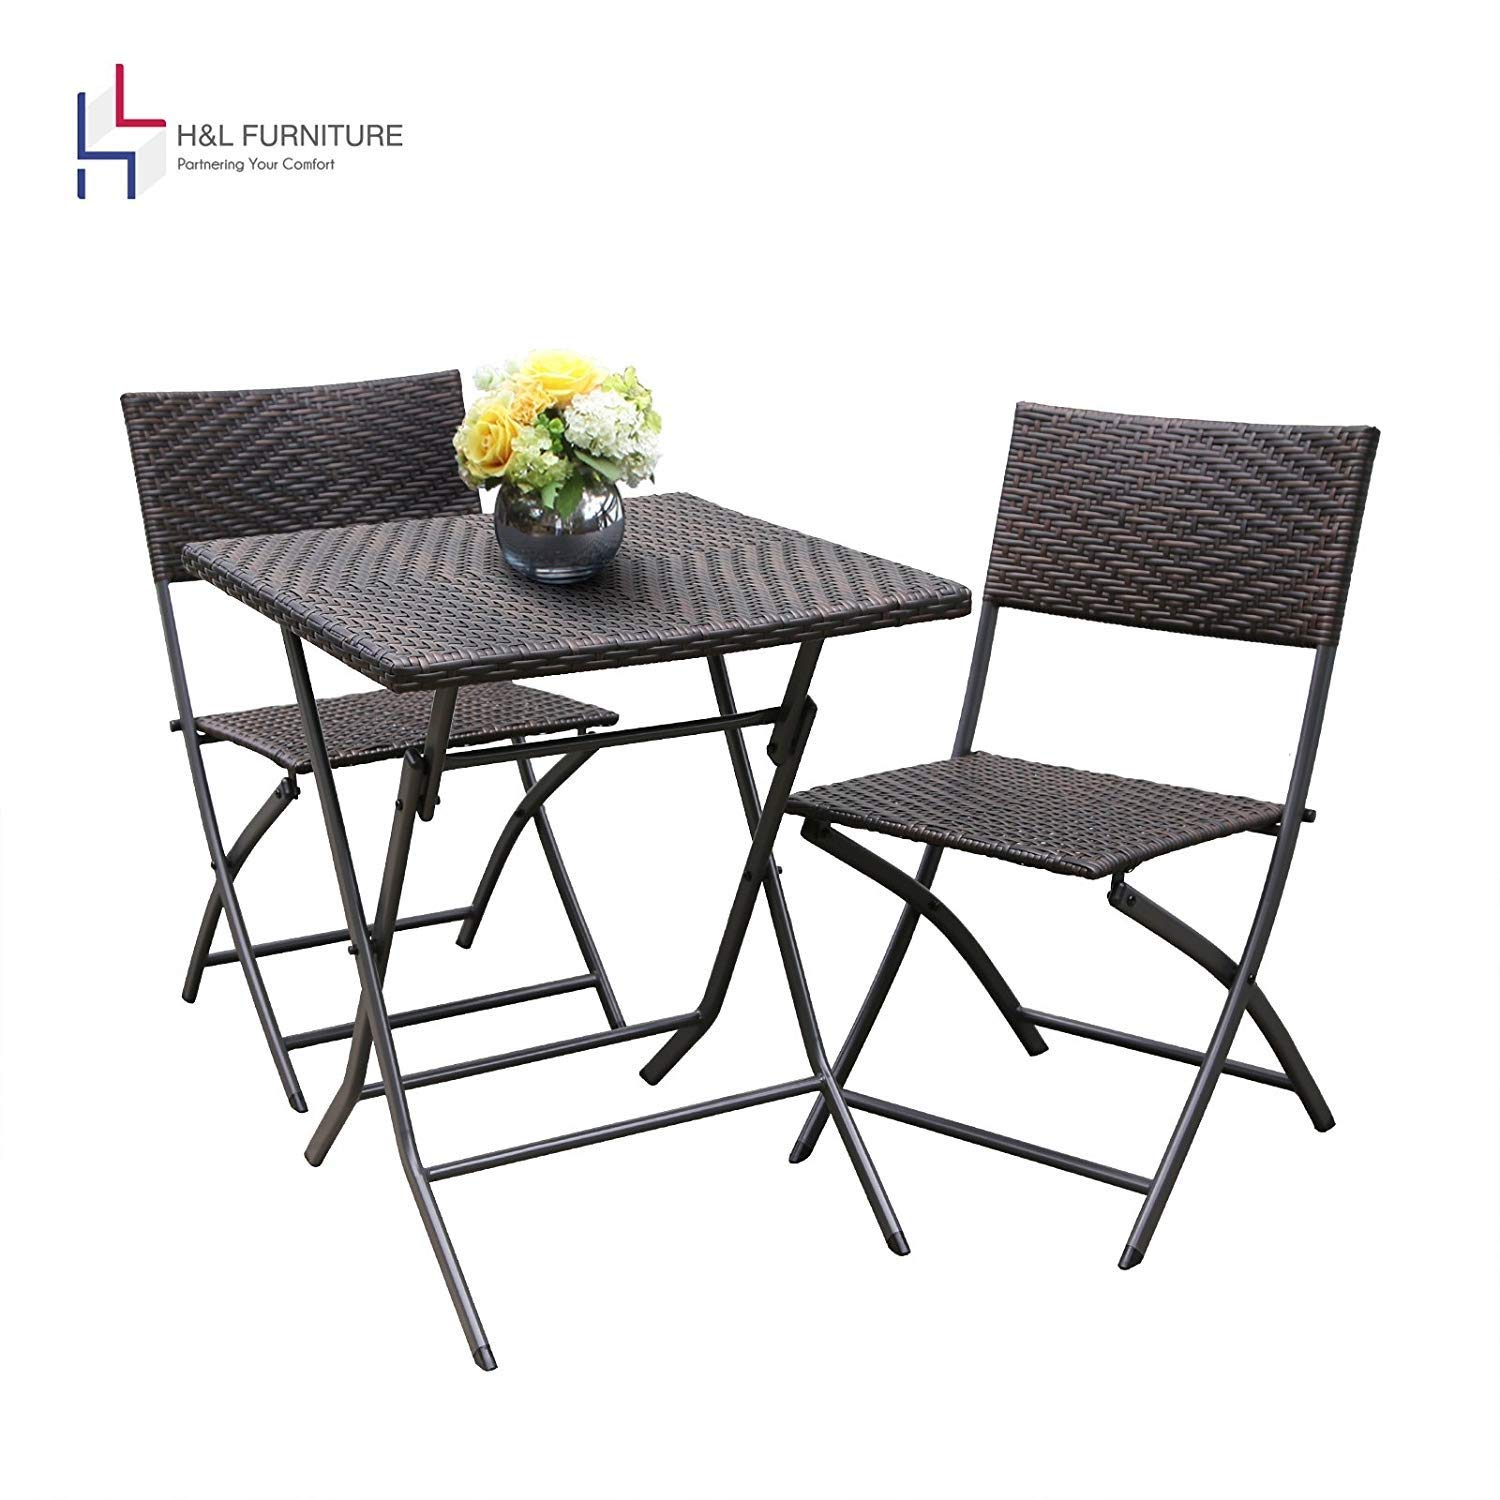 HL Patio Resin Rattan Steel Folding Bistro Set, Parma Style, All Weather Resistant Resin Wicker, 5 PCS/3PCS Set of Foldable Table and Chairs, Color Espresso Brown, 3-Year Warranty, No Assembly Needed by HL